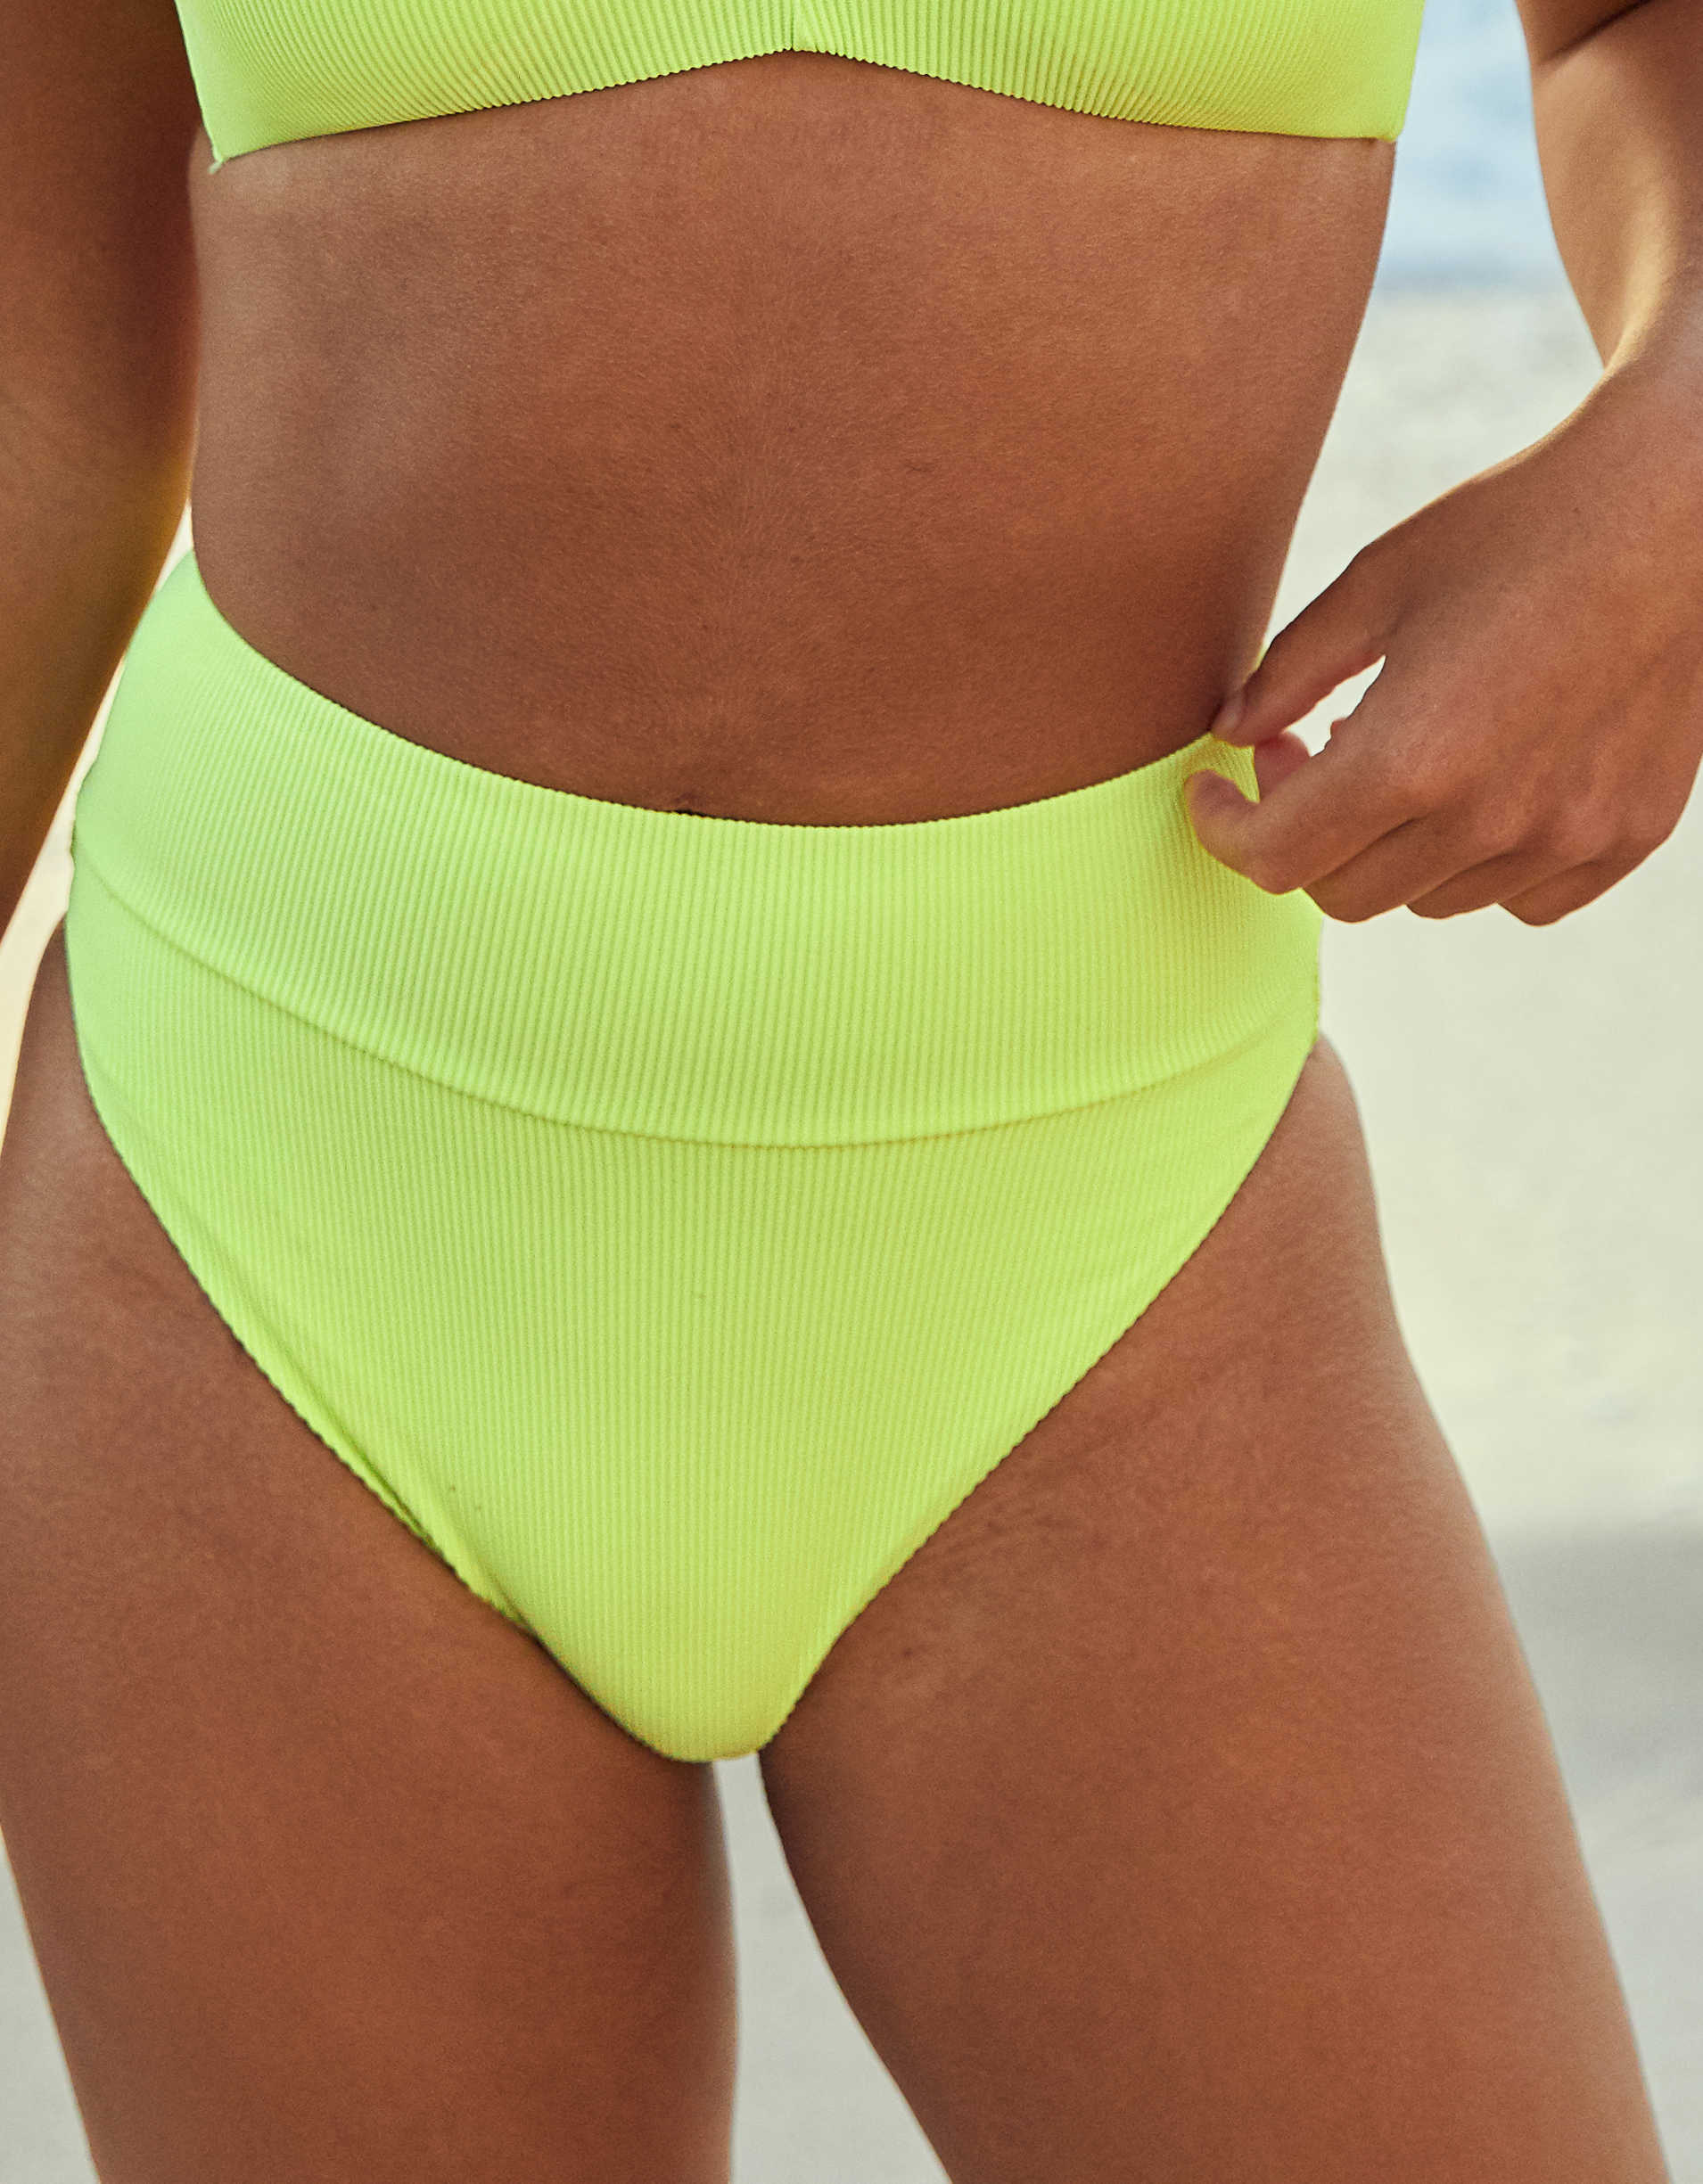 Aerie Ribbed High Cut Cheeky Bikini Bottom